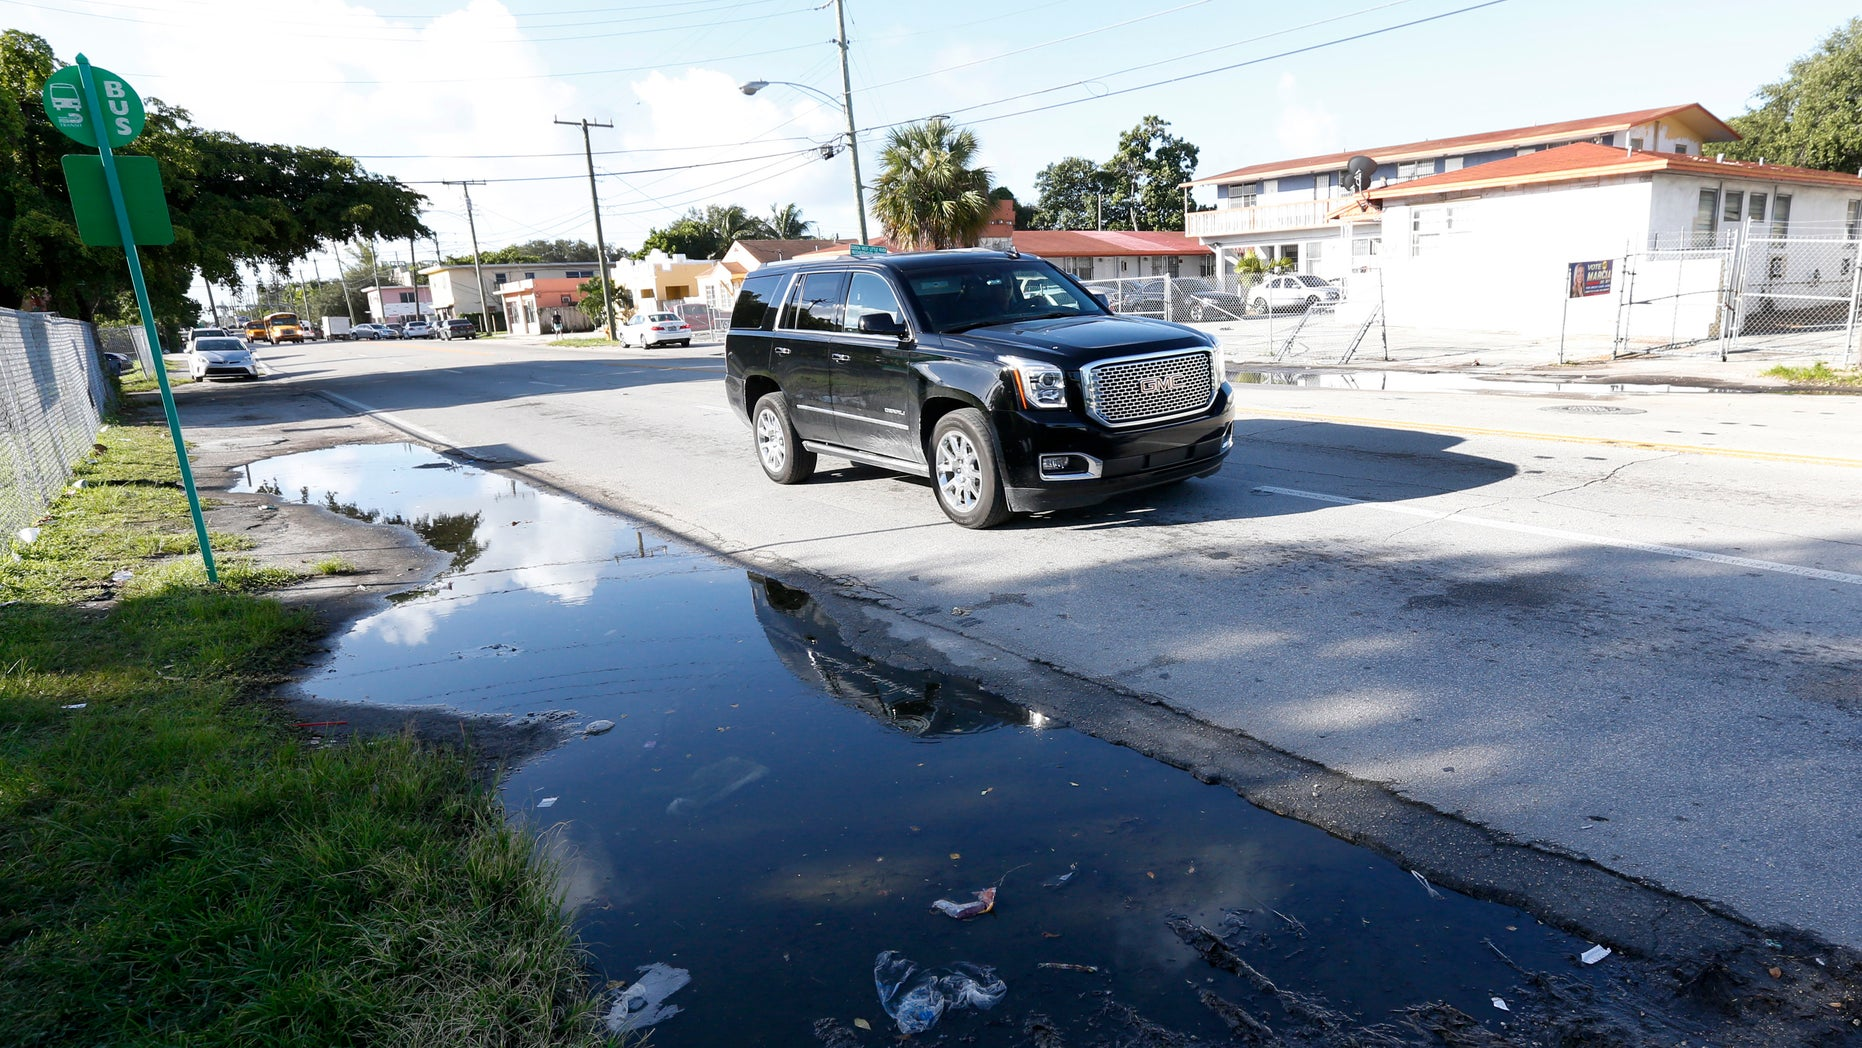 A vehicle drives past a pool of standing water where mosquitoes can breed, Friday, Oct. 14, 2016, in Miami. Thursday, Fla., Governor Rick Scott announced that the Florida Department of Health has confirmed that local transmission of the Zika virus is occurring in a new, approximately square mile area, in Miami-Dade County. (AP Photo/Wilfredo Lee)